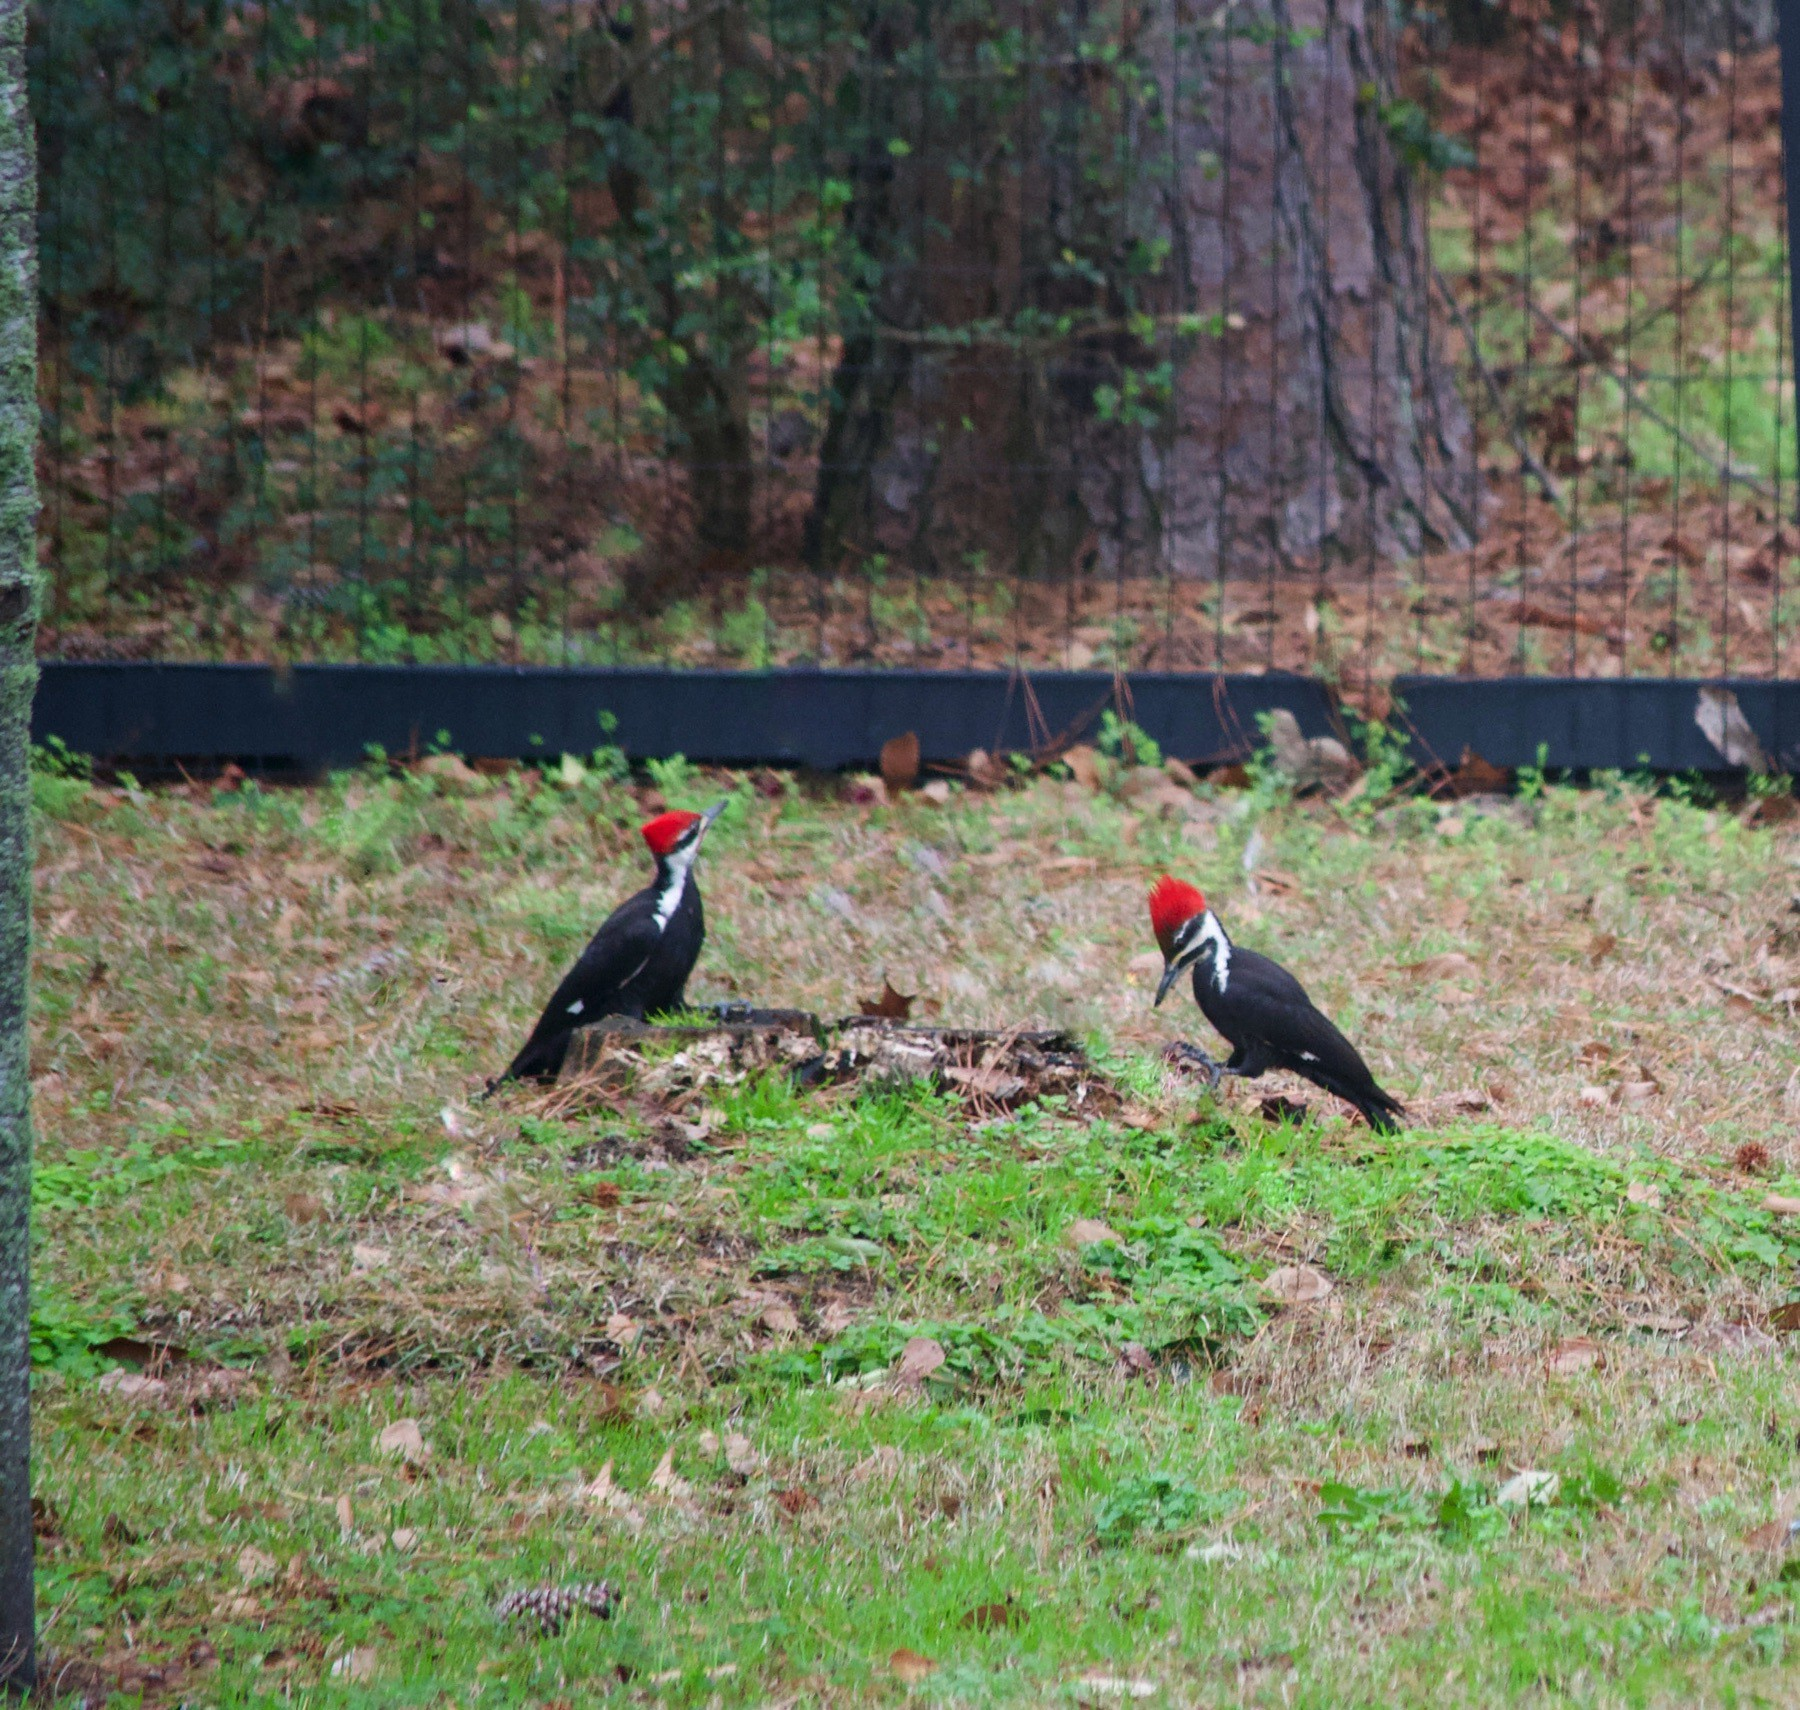 Two Pileated woodpeckers in the distance eating on a tree stump on the ground..